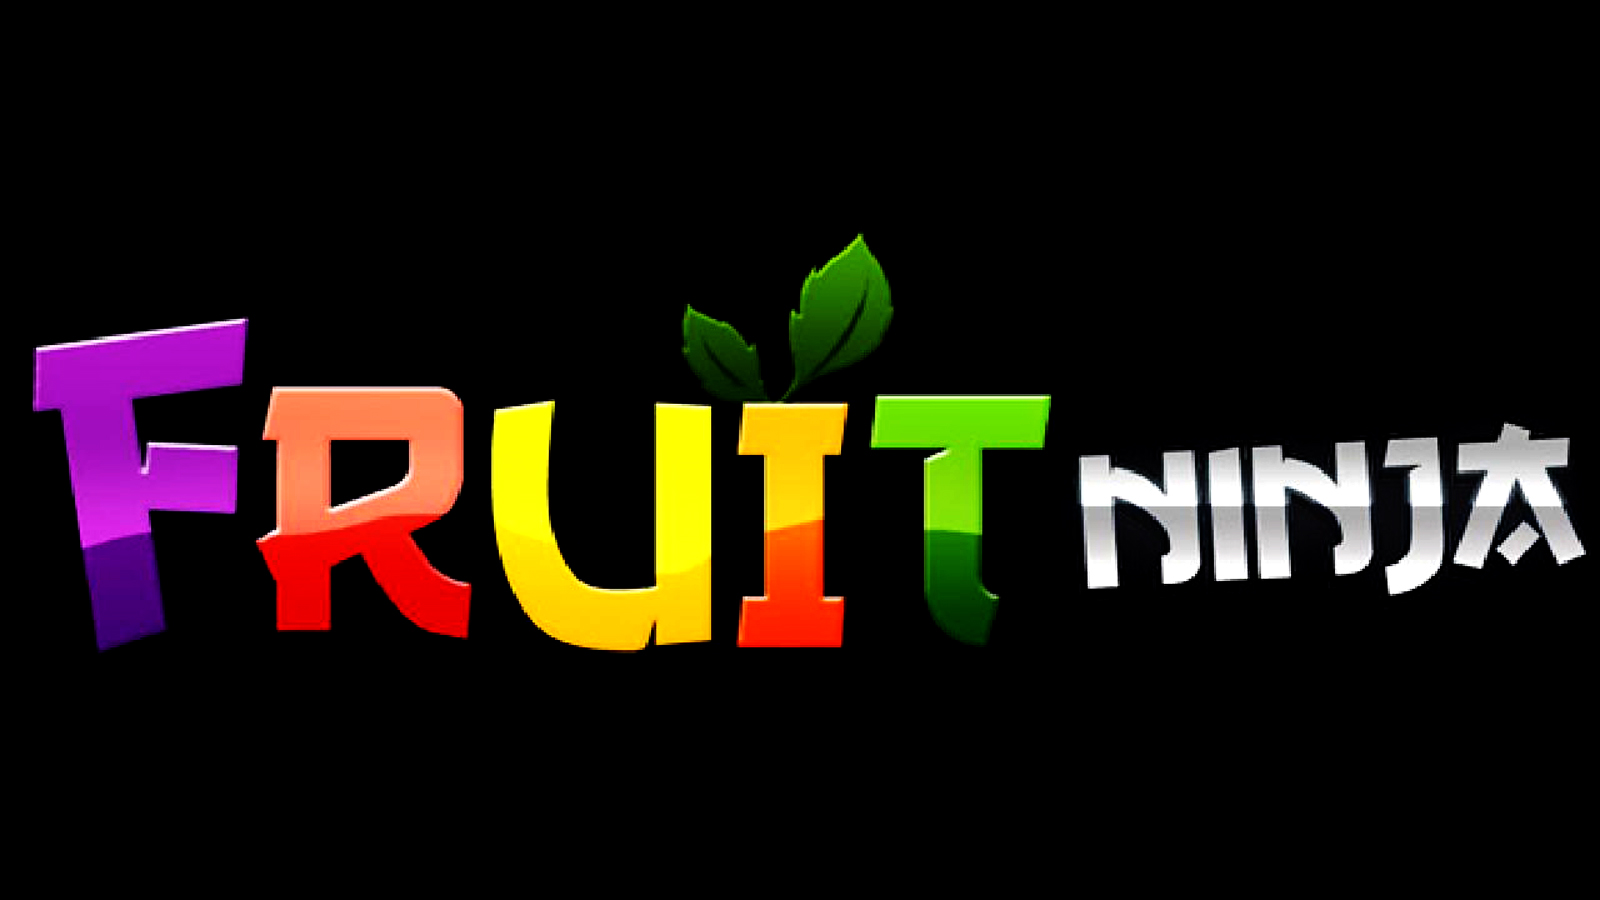 http://2.bp.blogspot.com/-IkEorbL0PcY/TvorI33KEgI/AAAAAAAAAME/-aU0rT1JJso/s1600/Fruit_Ninja_Colorful_Text_Logo_HD_Wallpaper-Vvallpaper.Net.jpg